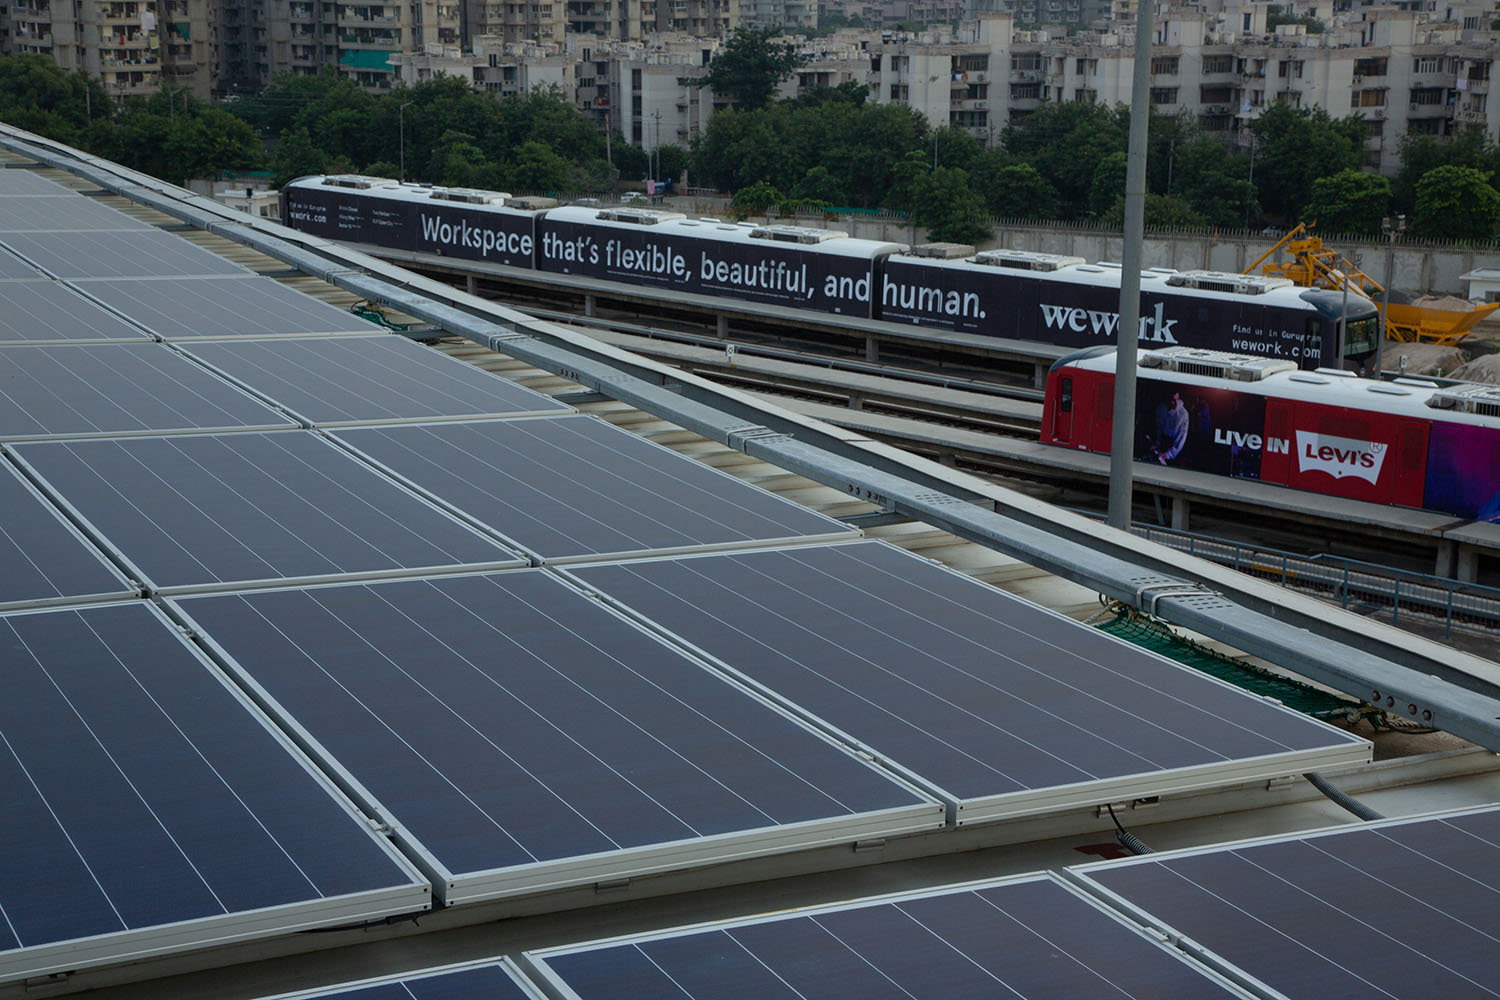 Rapid Metro: Gurugram's public transport systems' one-of-a kind green initiative